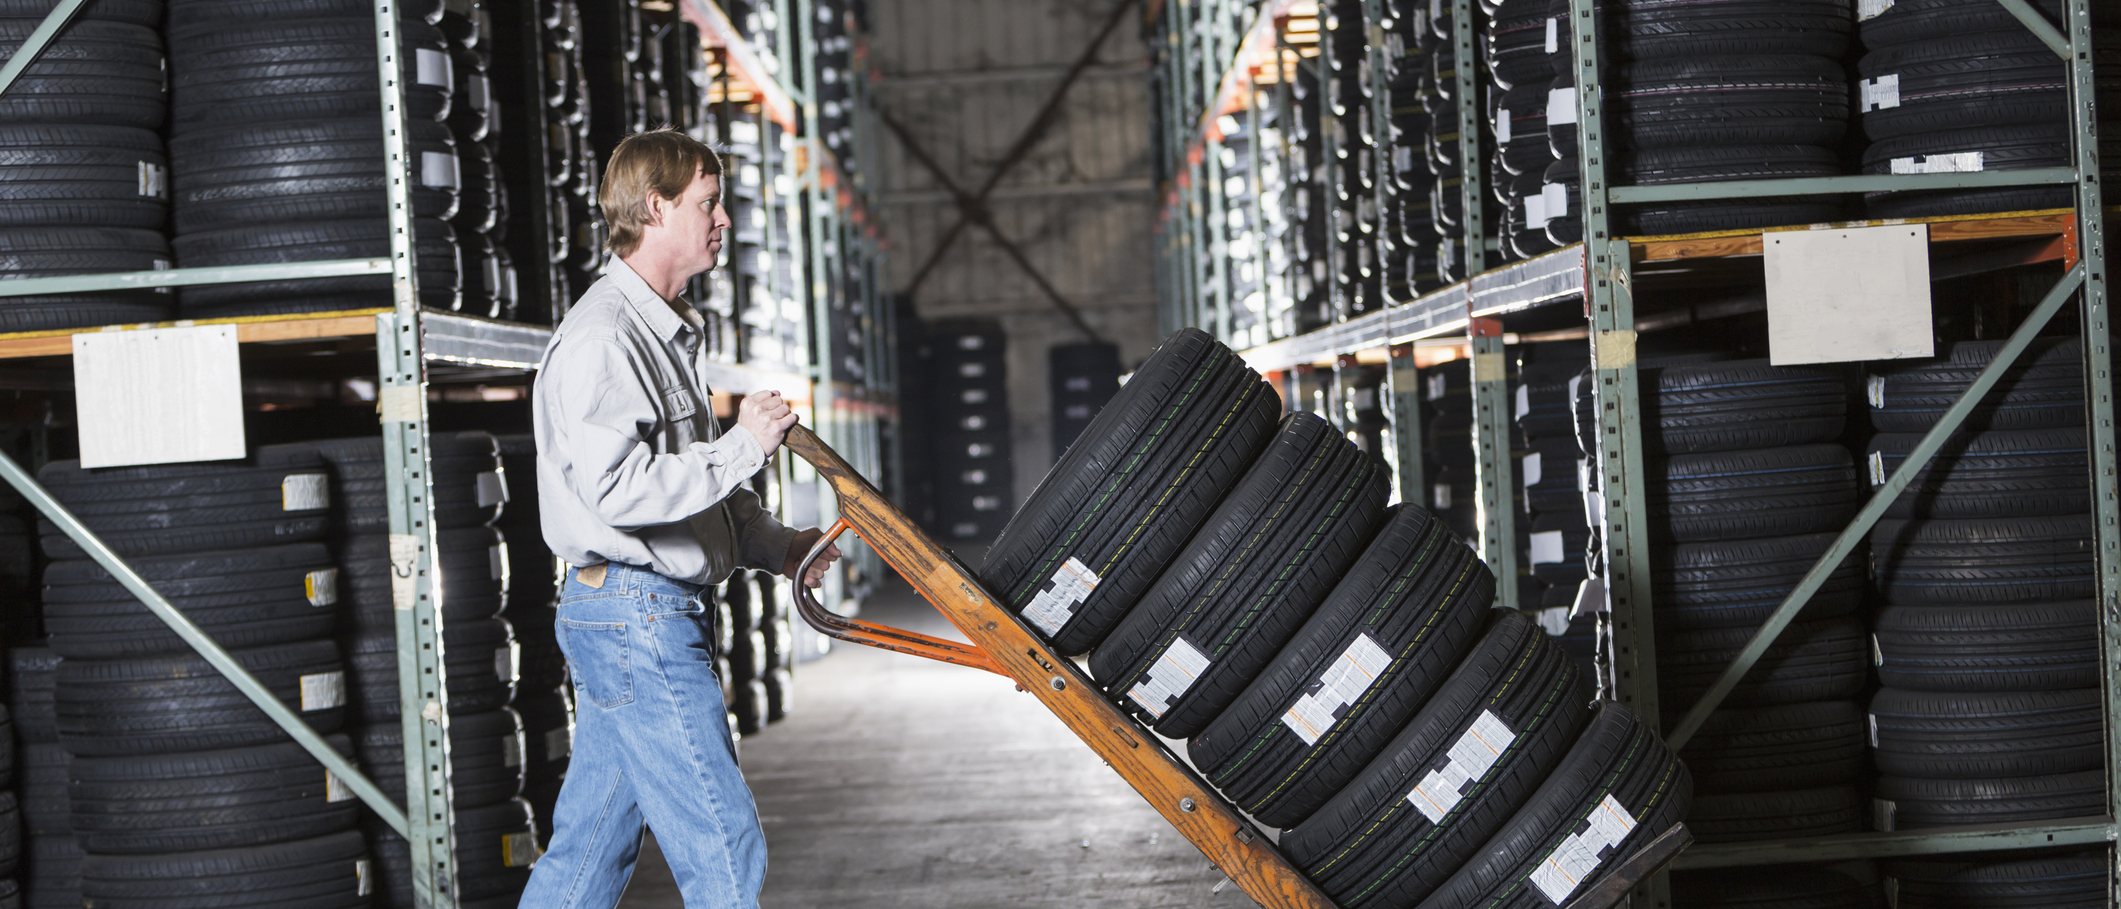 Businesses owner storing tires in warehouse